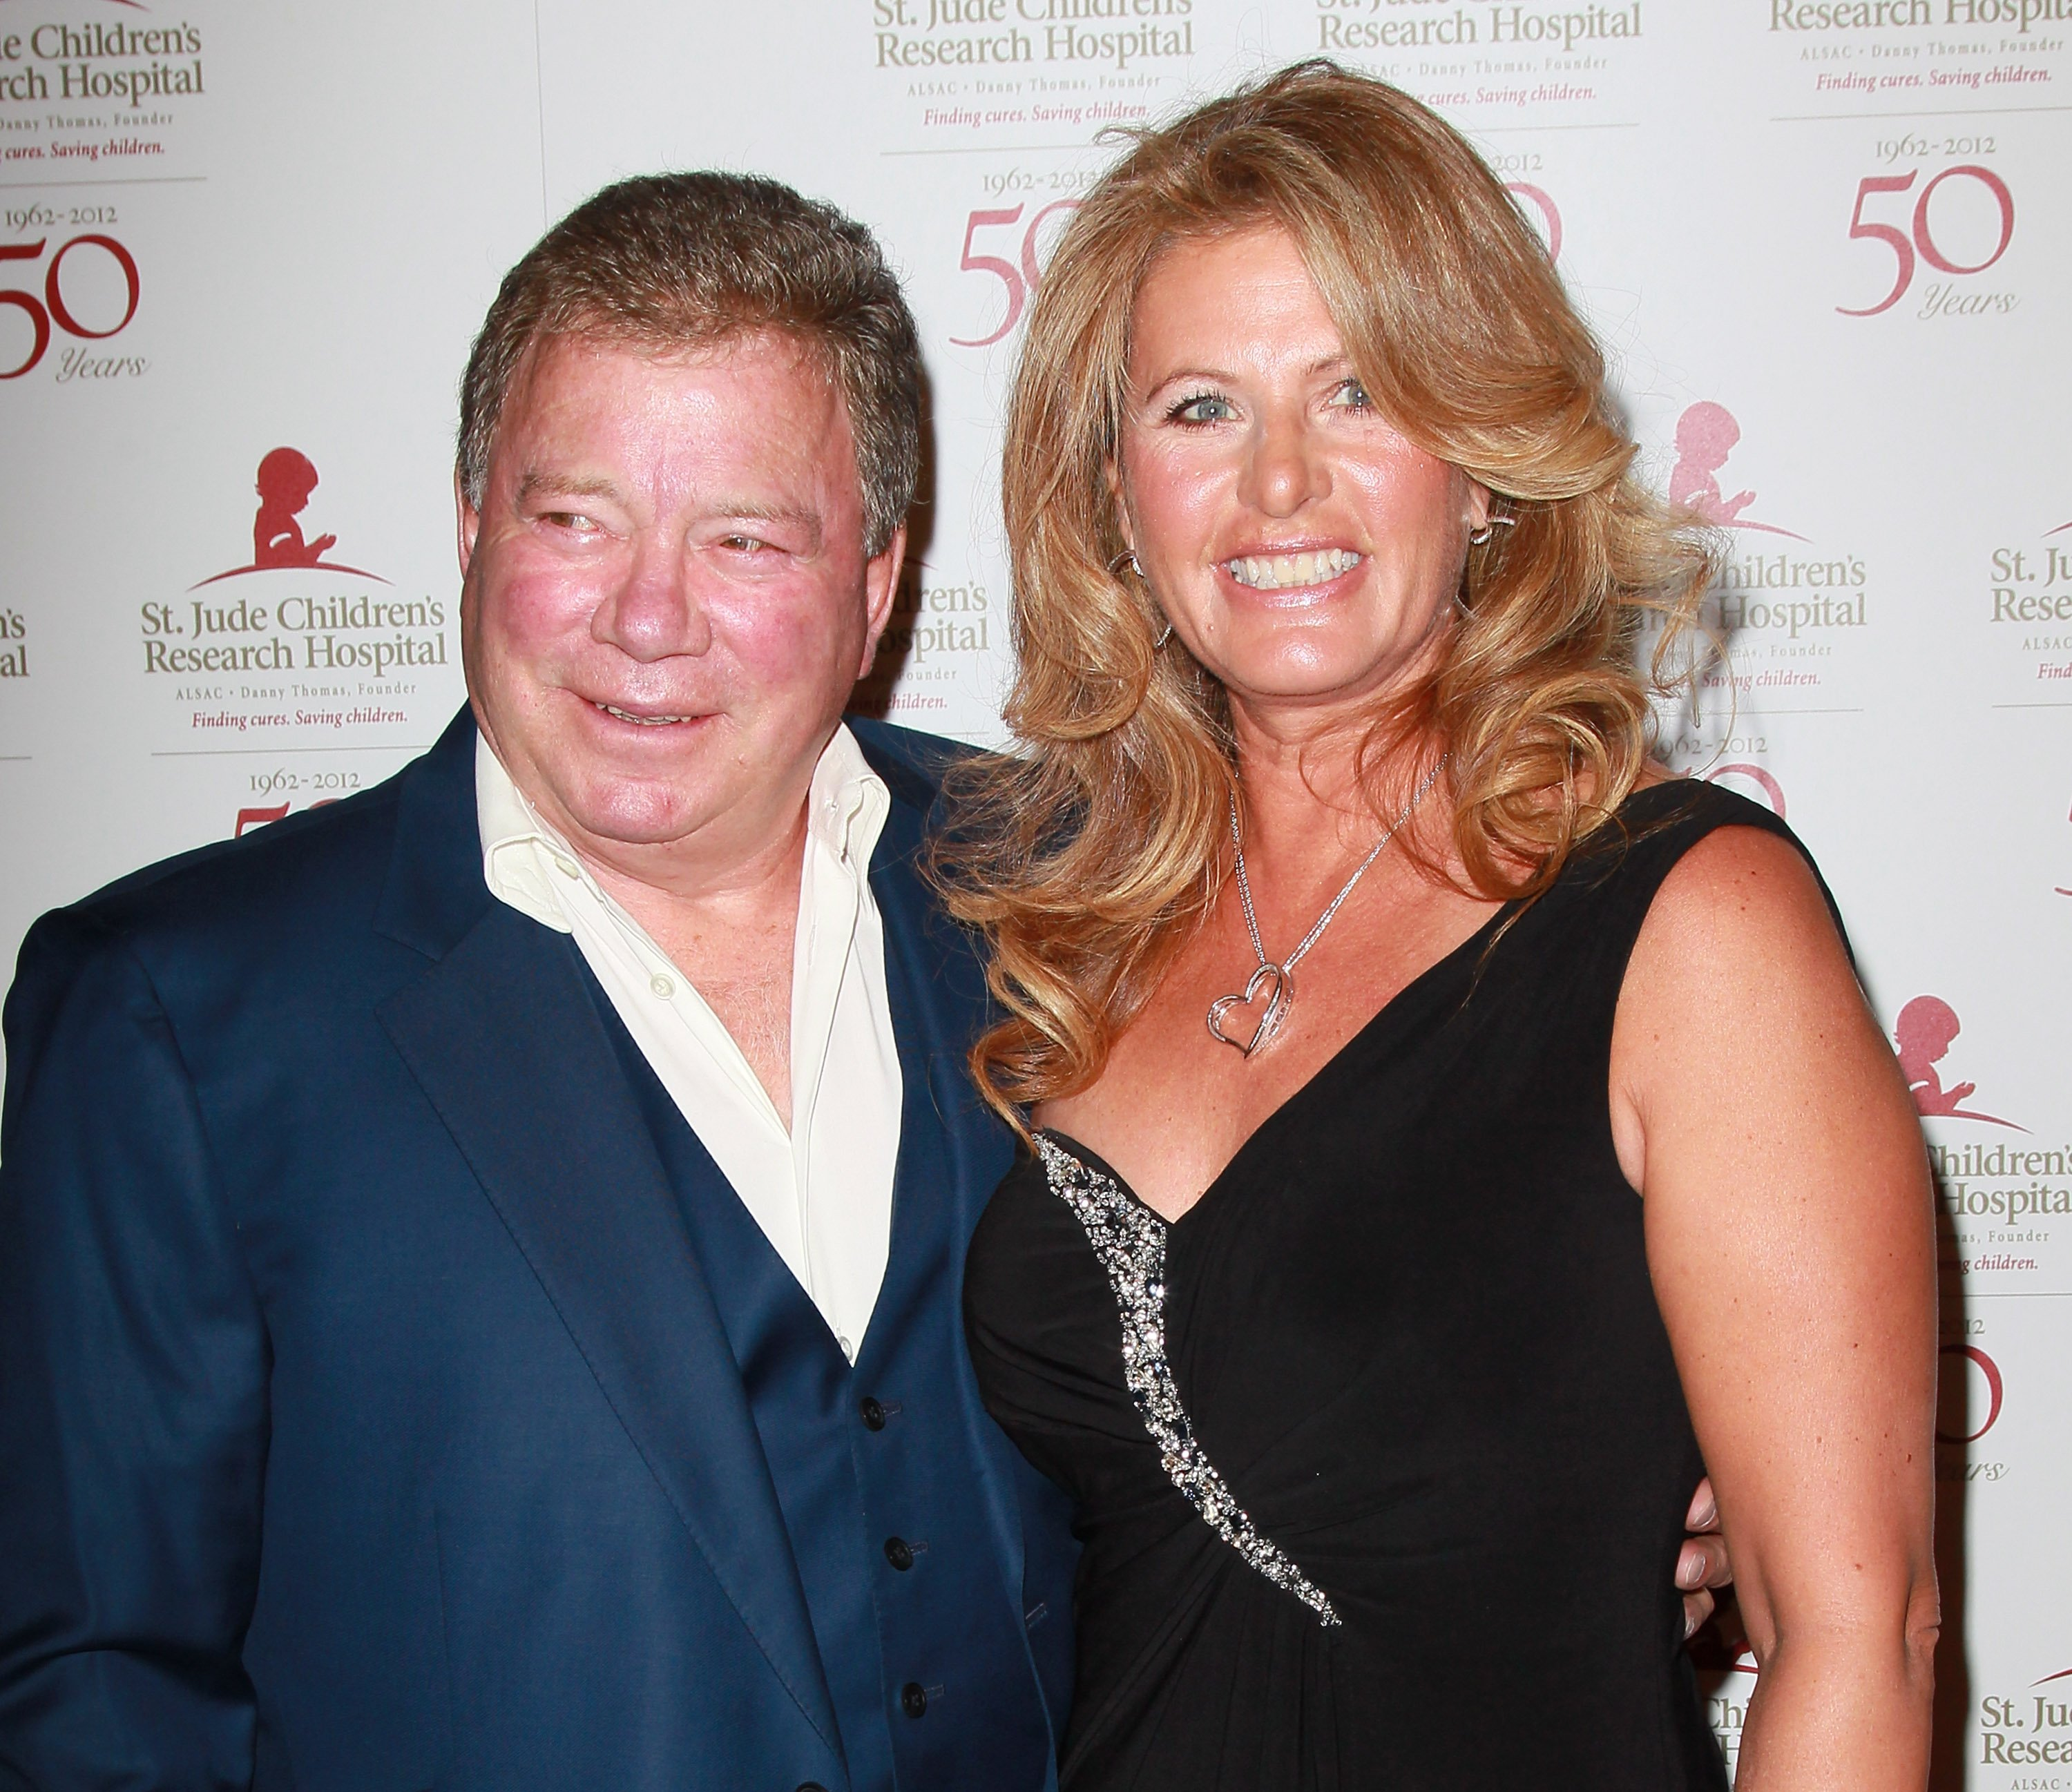 William Shatner and wife Elizabeth Shatner attend the 50th anniversary celebration for St. Jude Children's Research Hospital at The Beverly Hilton hotel on January 7, 2012 | Photo: GettyImages